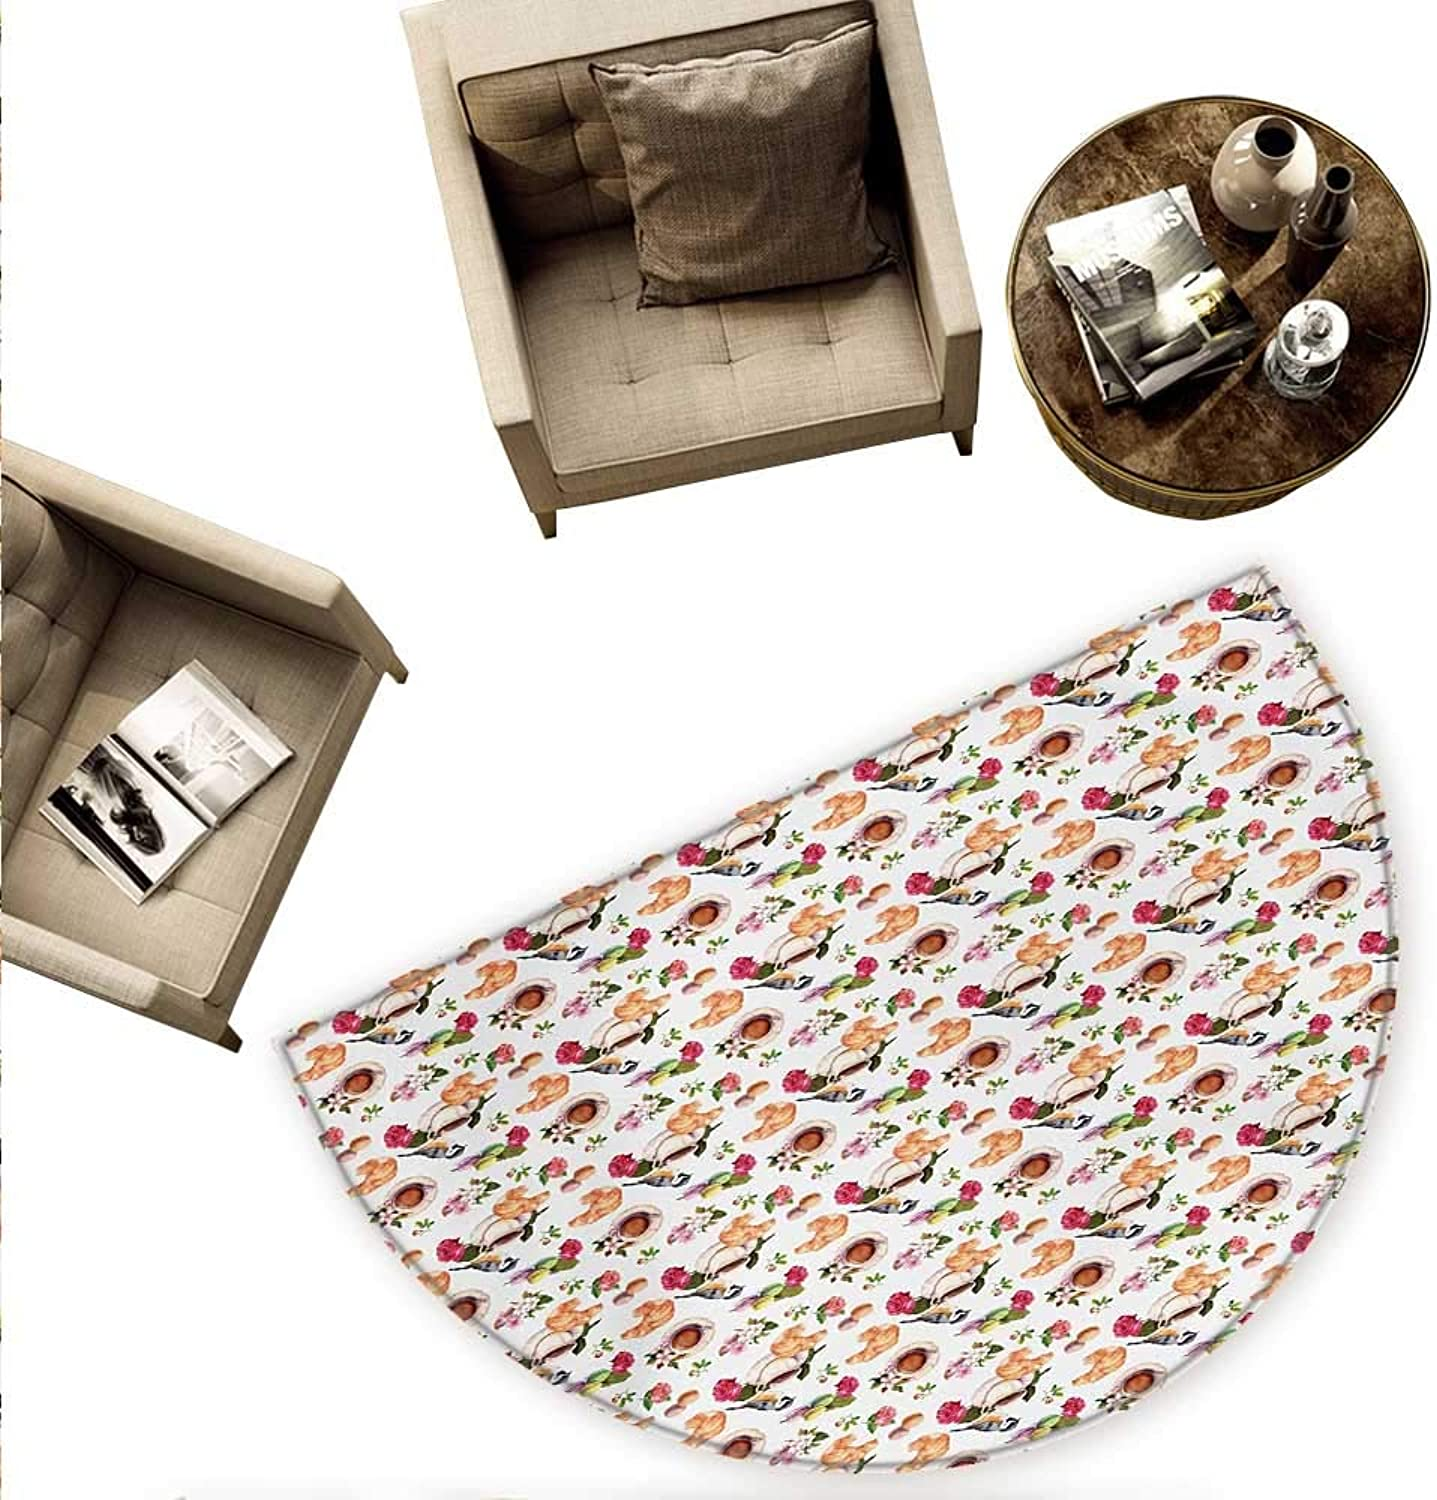 Vintage Semicircular Cushion Vintage Retro Mothers Day Themed Tea Time British Inspired Teapots and Flowers Entry Door Mat H 78.7  xD 118.1  Multicolor